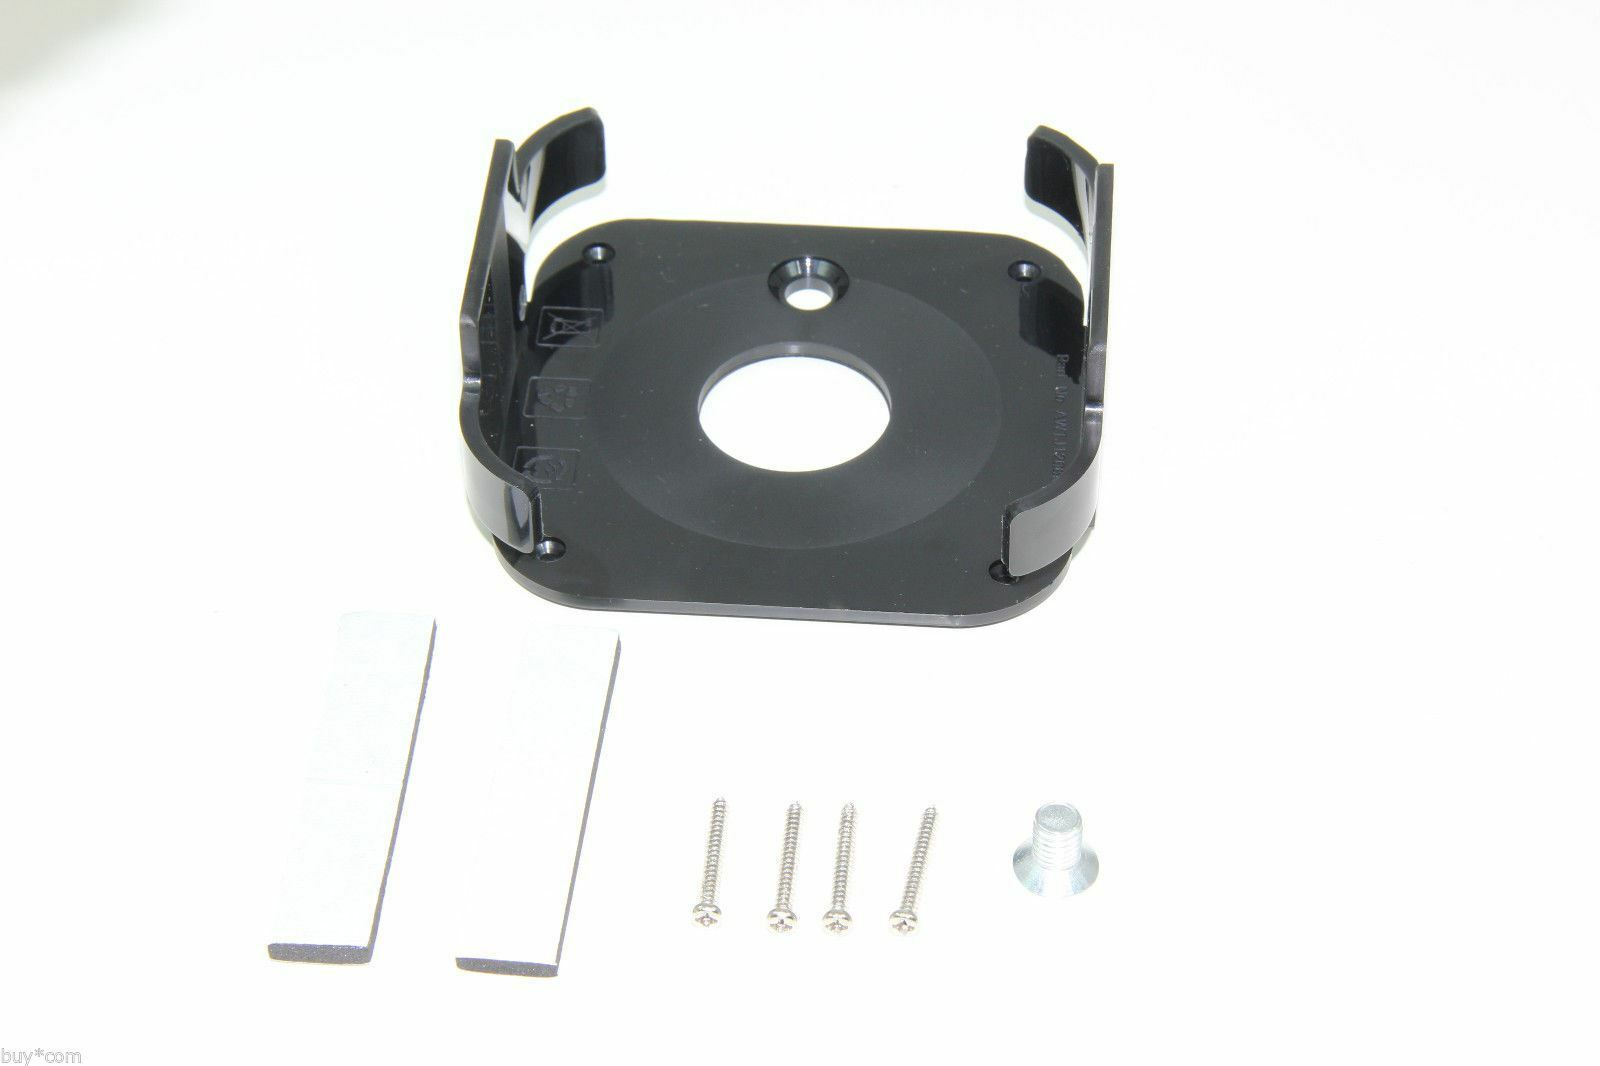 Wall Mount Holder Bracket Tray For Apple TV 4 4th Generation MGY52LL//A Mount